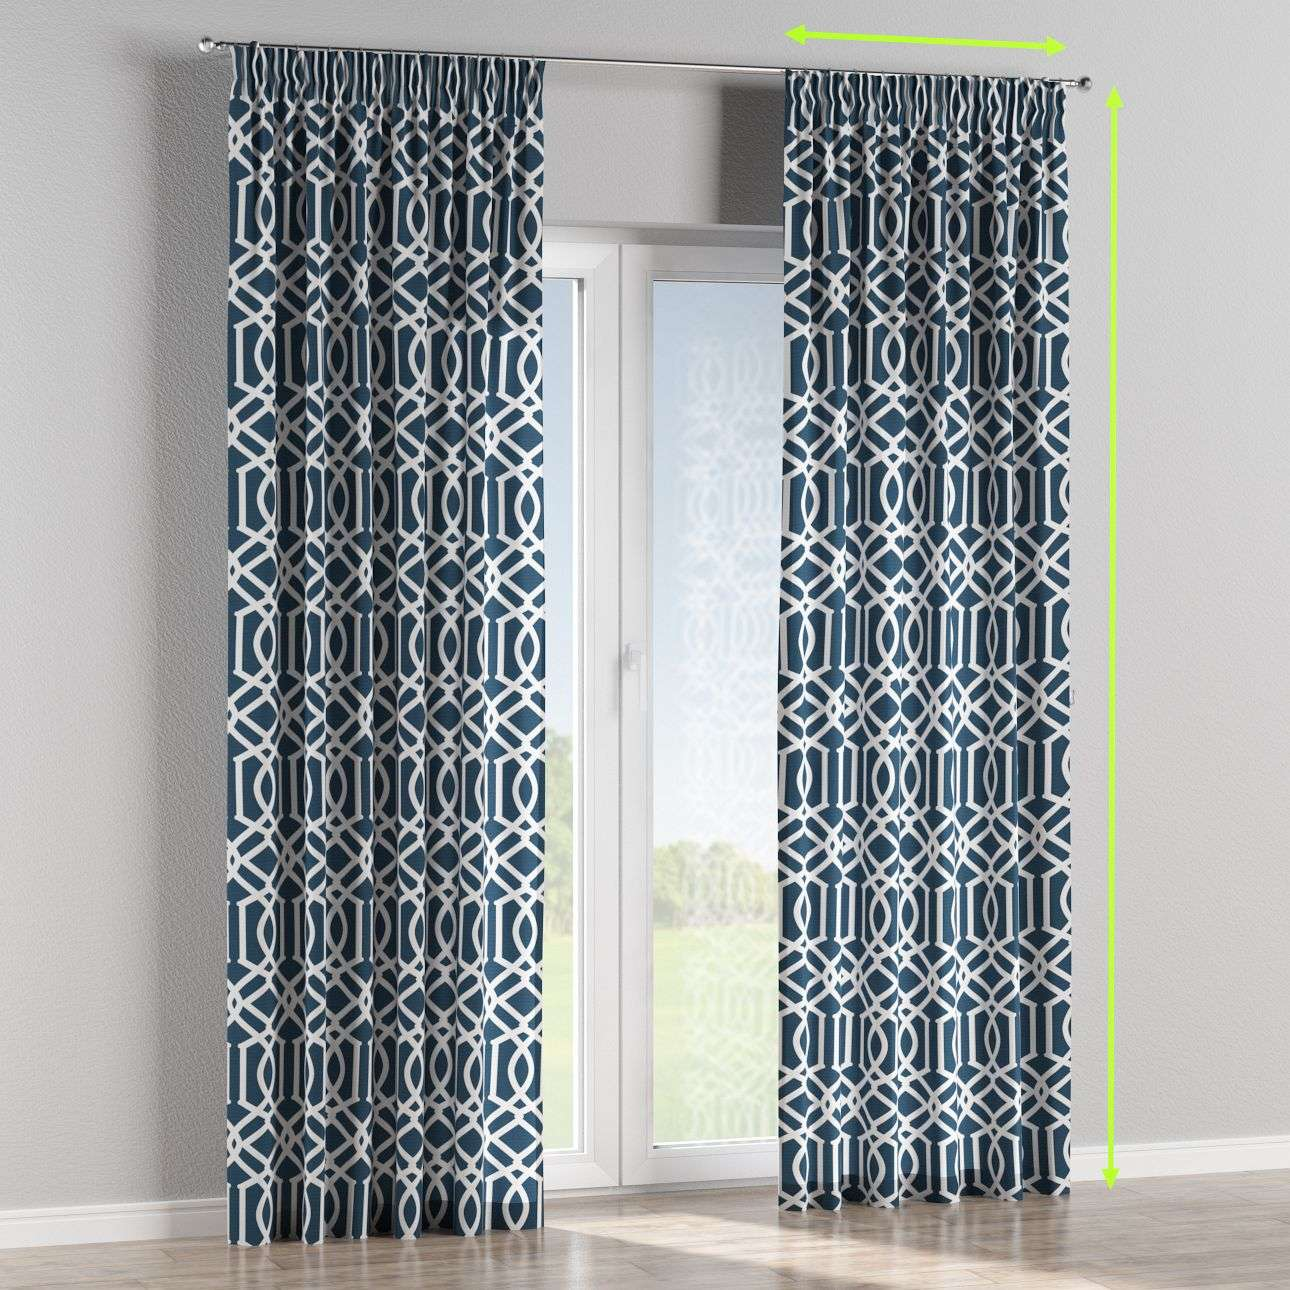 Pencil pleat lined curtains in collection Comics/Geometrical, fabric: 135-10